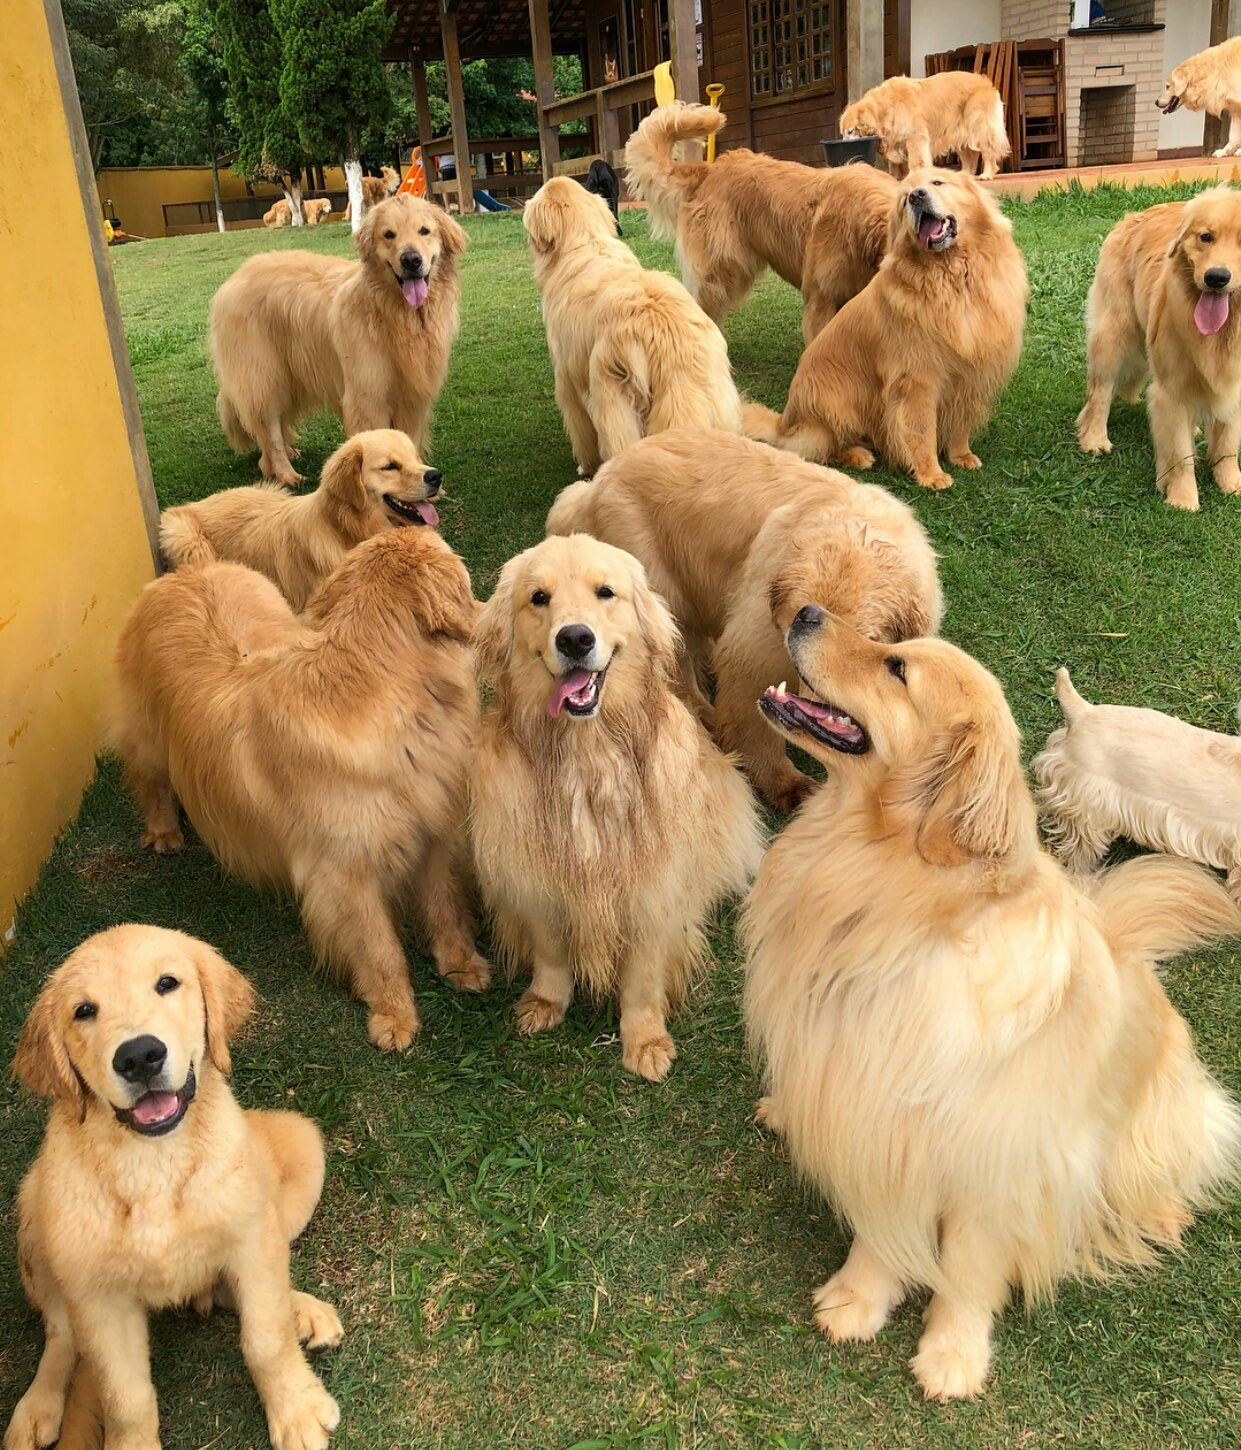 Golden Retriever Reunion Retriever Puppy Dogs Golden Retriever